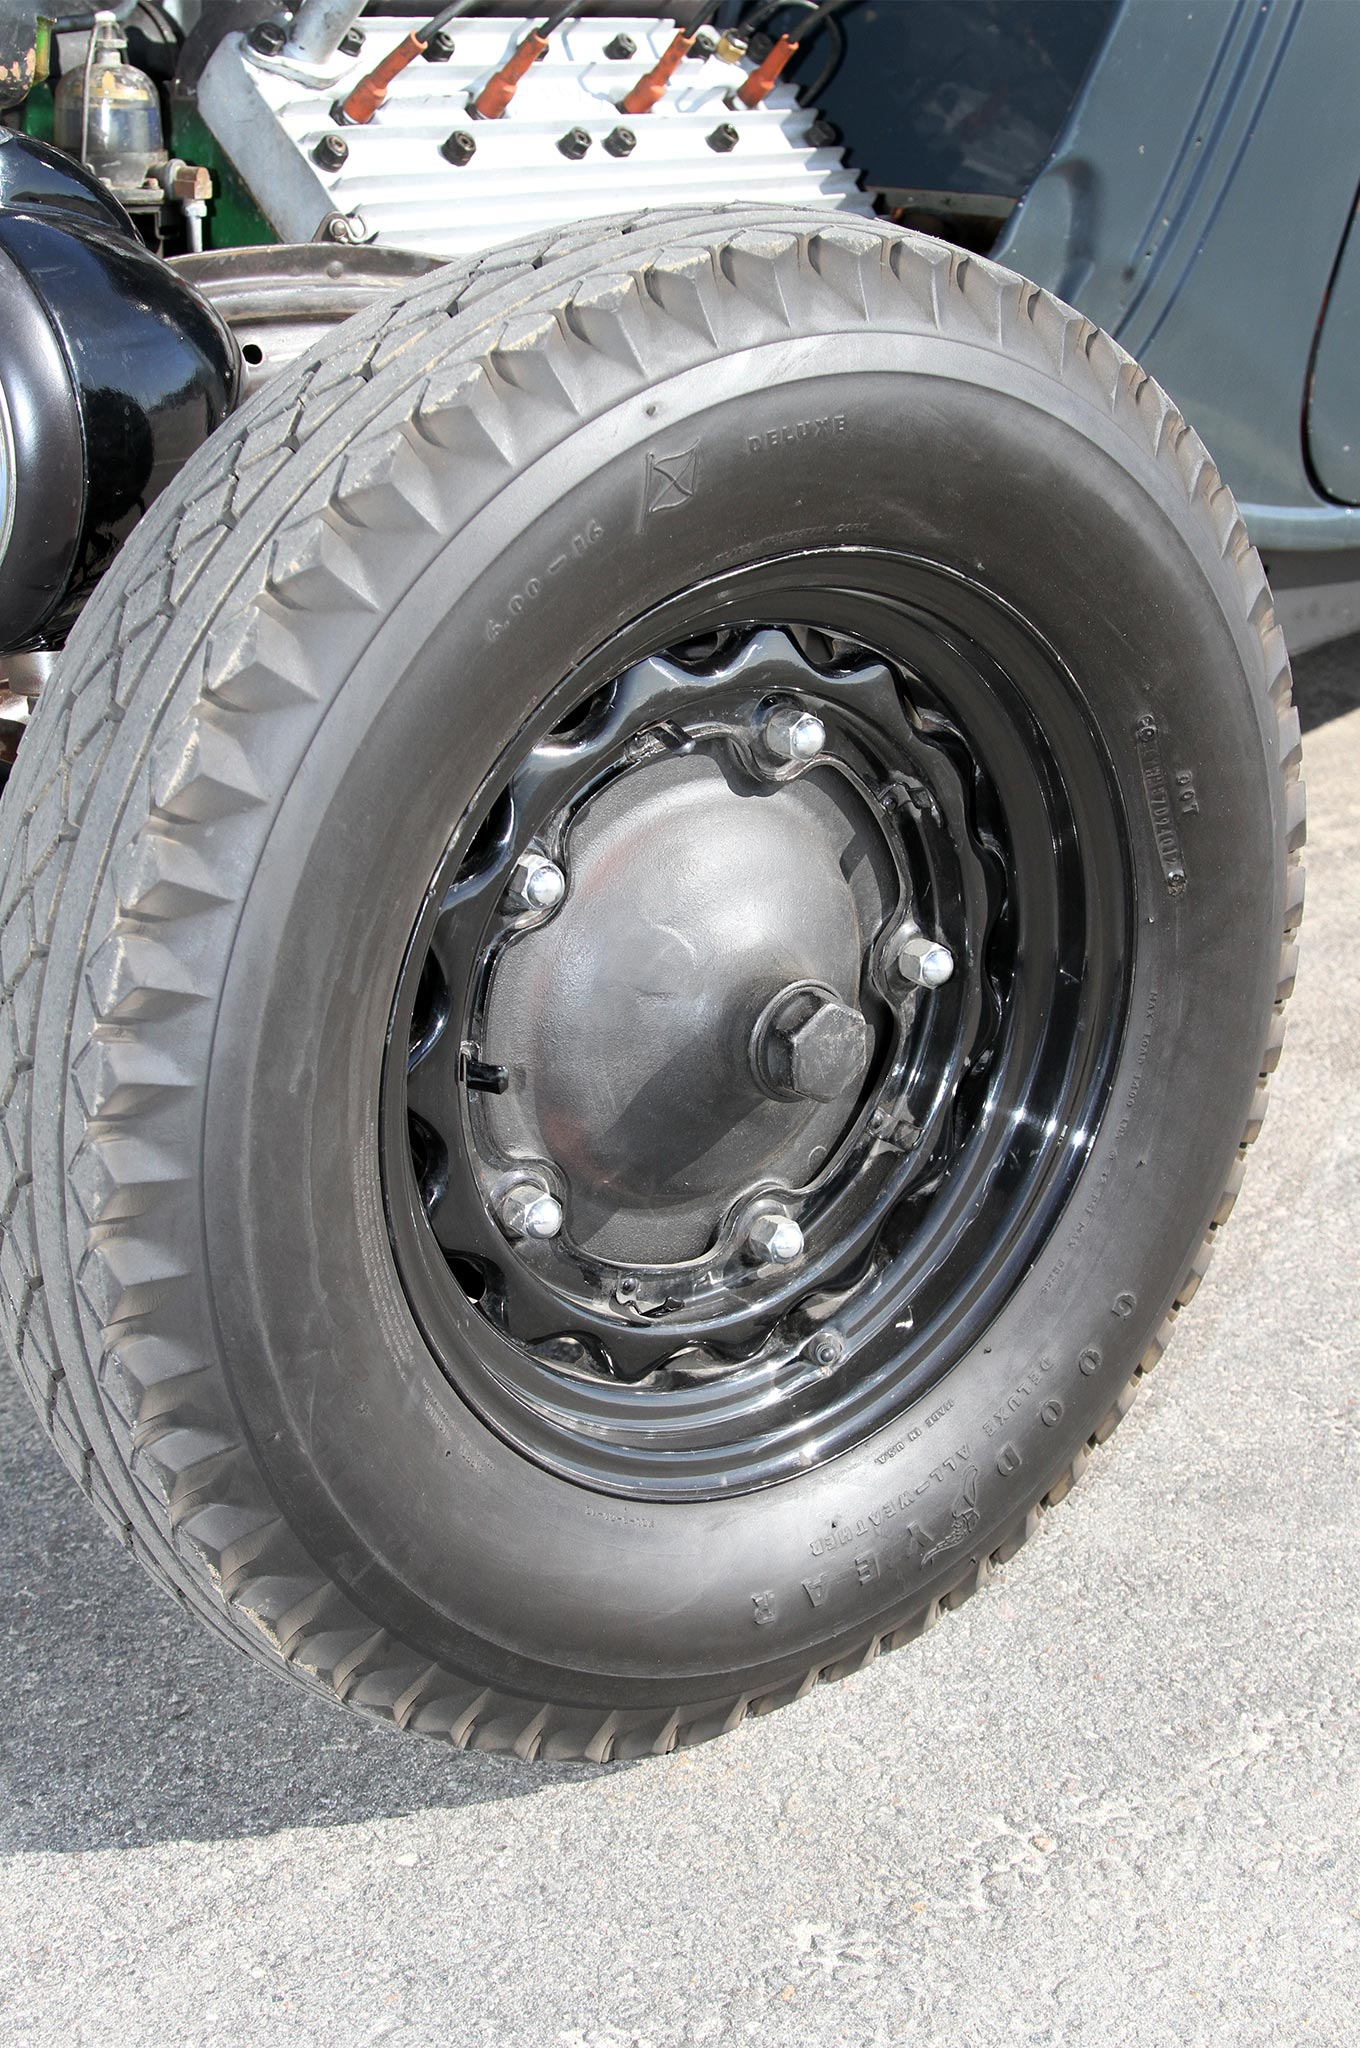 """The '34 uses the brakes from a '39 Ford. The brake drums are in the """"wide five"""" bolt pattern, which require using the wheels from a '39 Ford as well. The hubcaps were left off for a more aggressive look. The wheels for the front are 16s with vintage style Goodyear 6.00-16 tires. The rear wheels are 18s with 7.00-18 tires from Specialty Tires of America."""